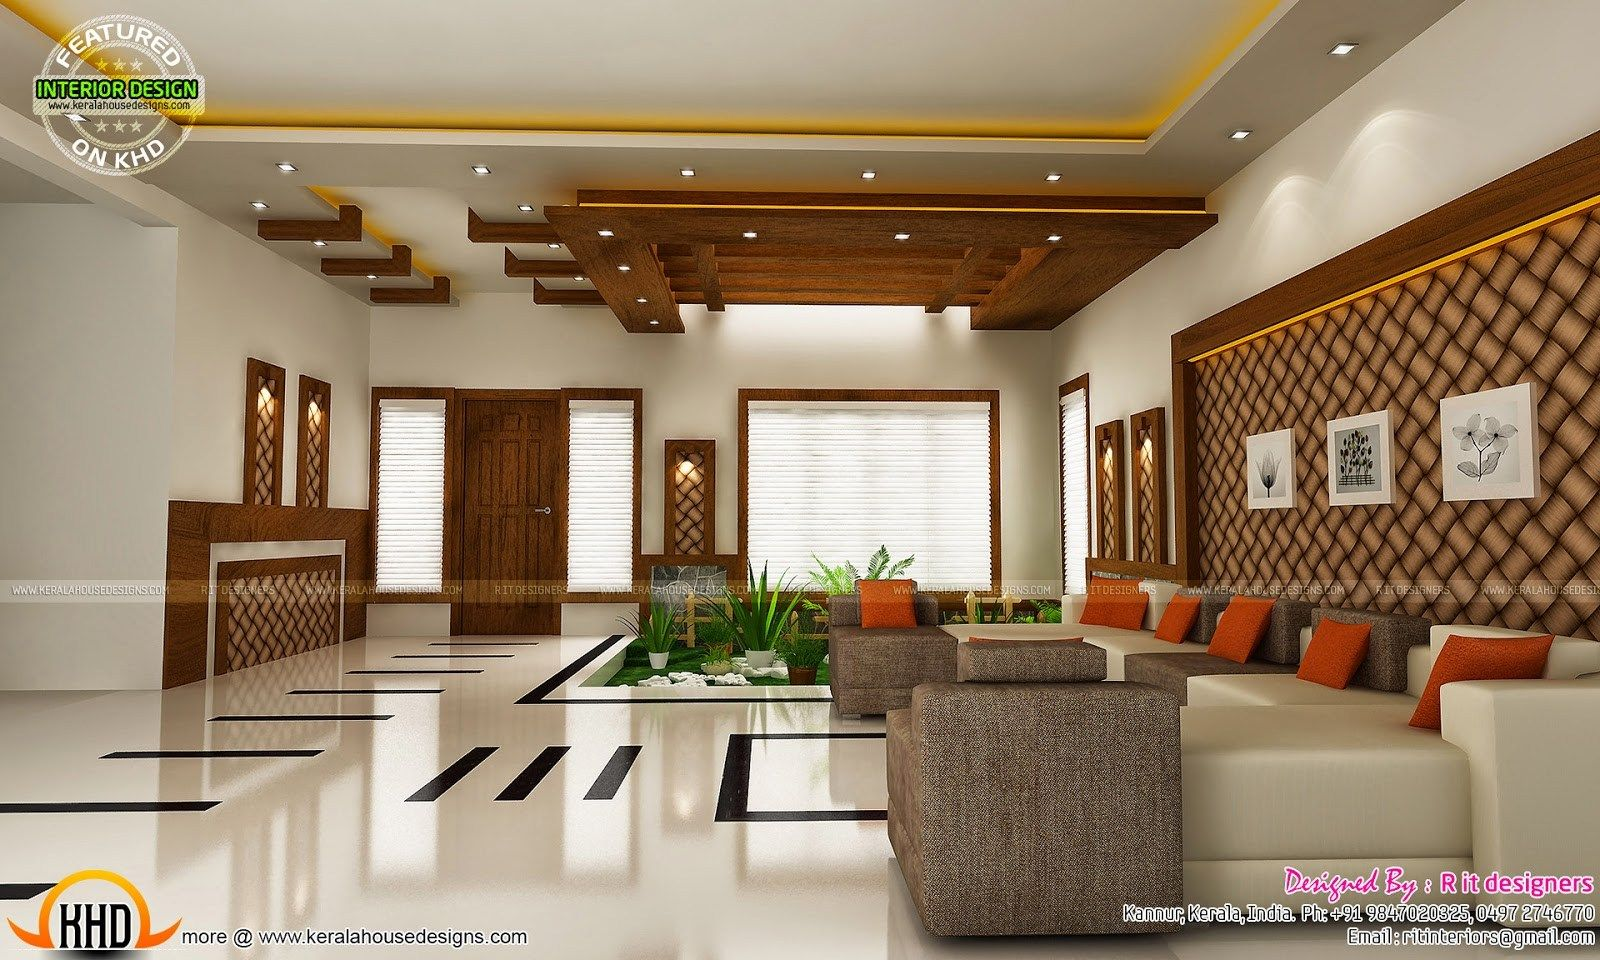 Home interior ideas kerala kitchen interior kerala home design and floor plans tag for creative